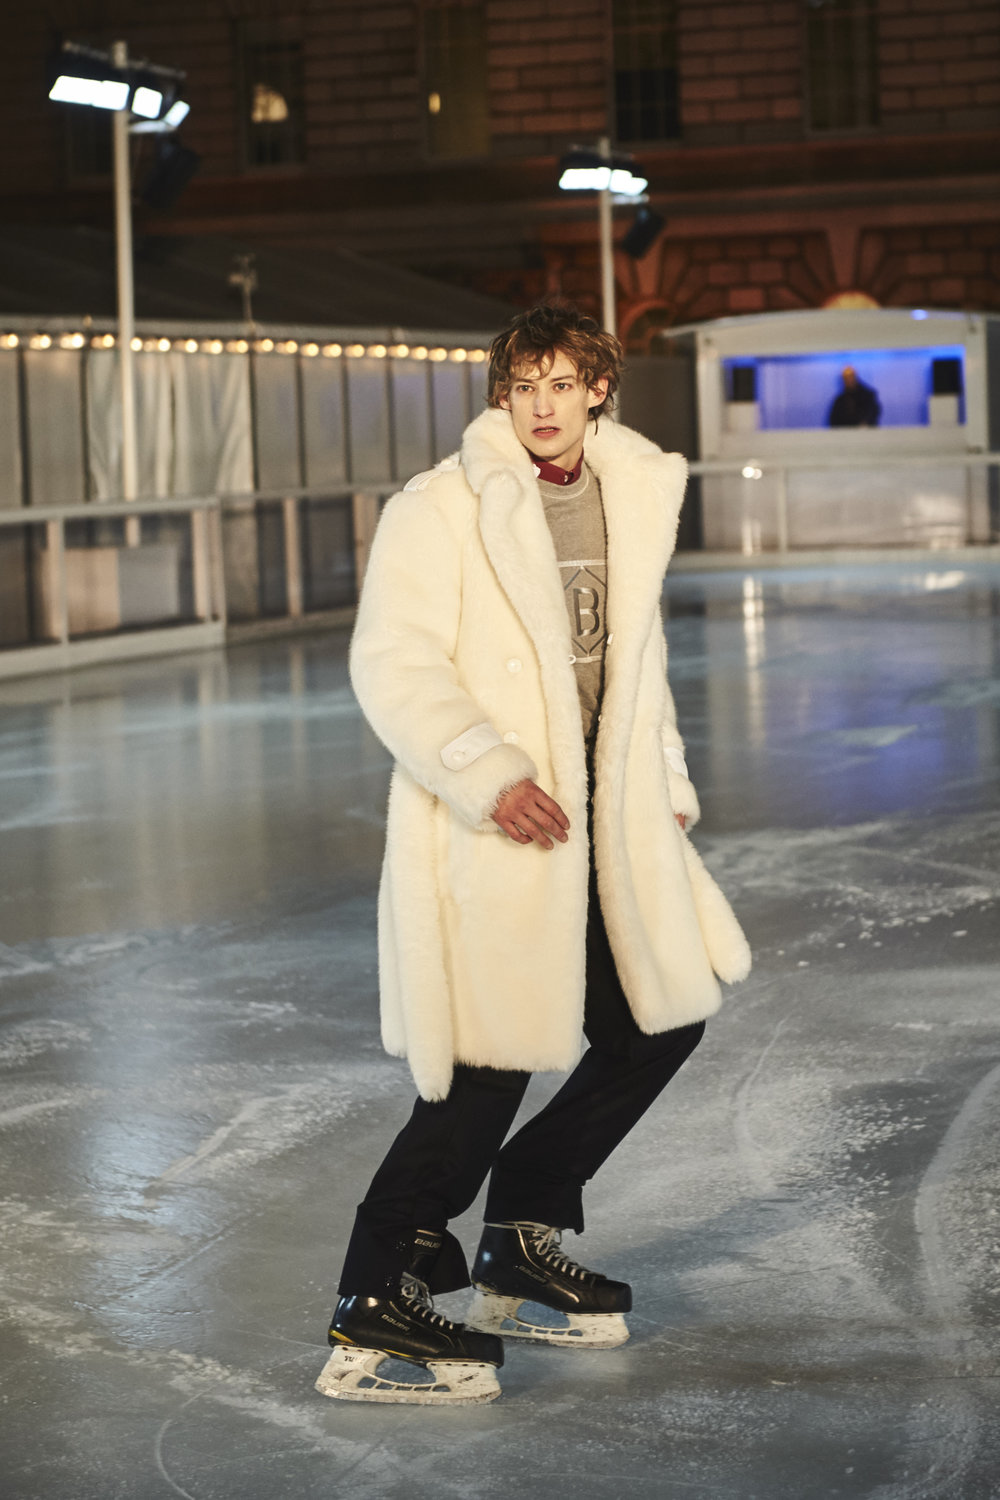 100_BandOfOutsiders_On_Ice_200.jpg